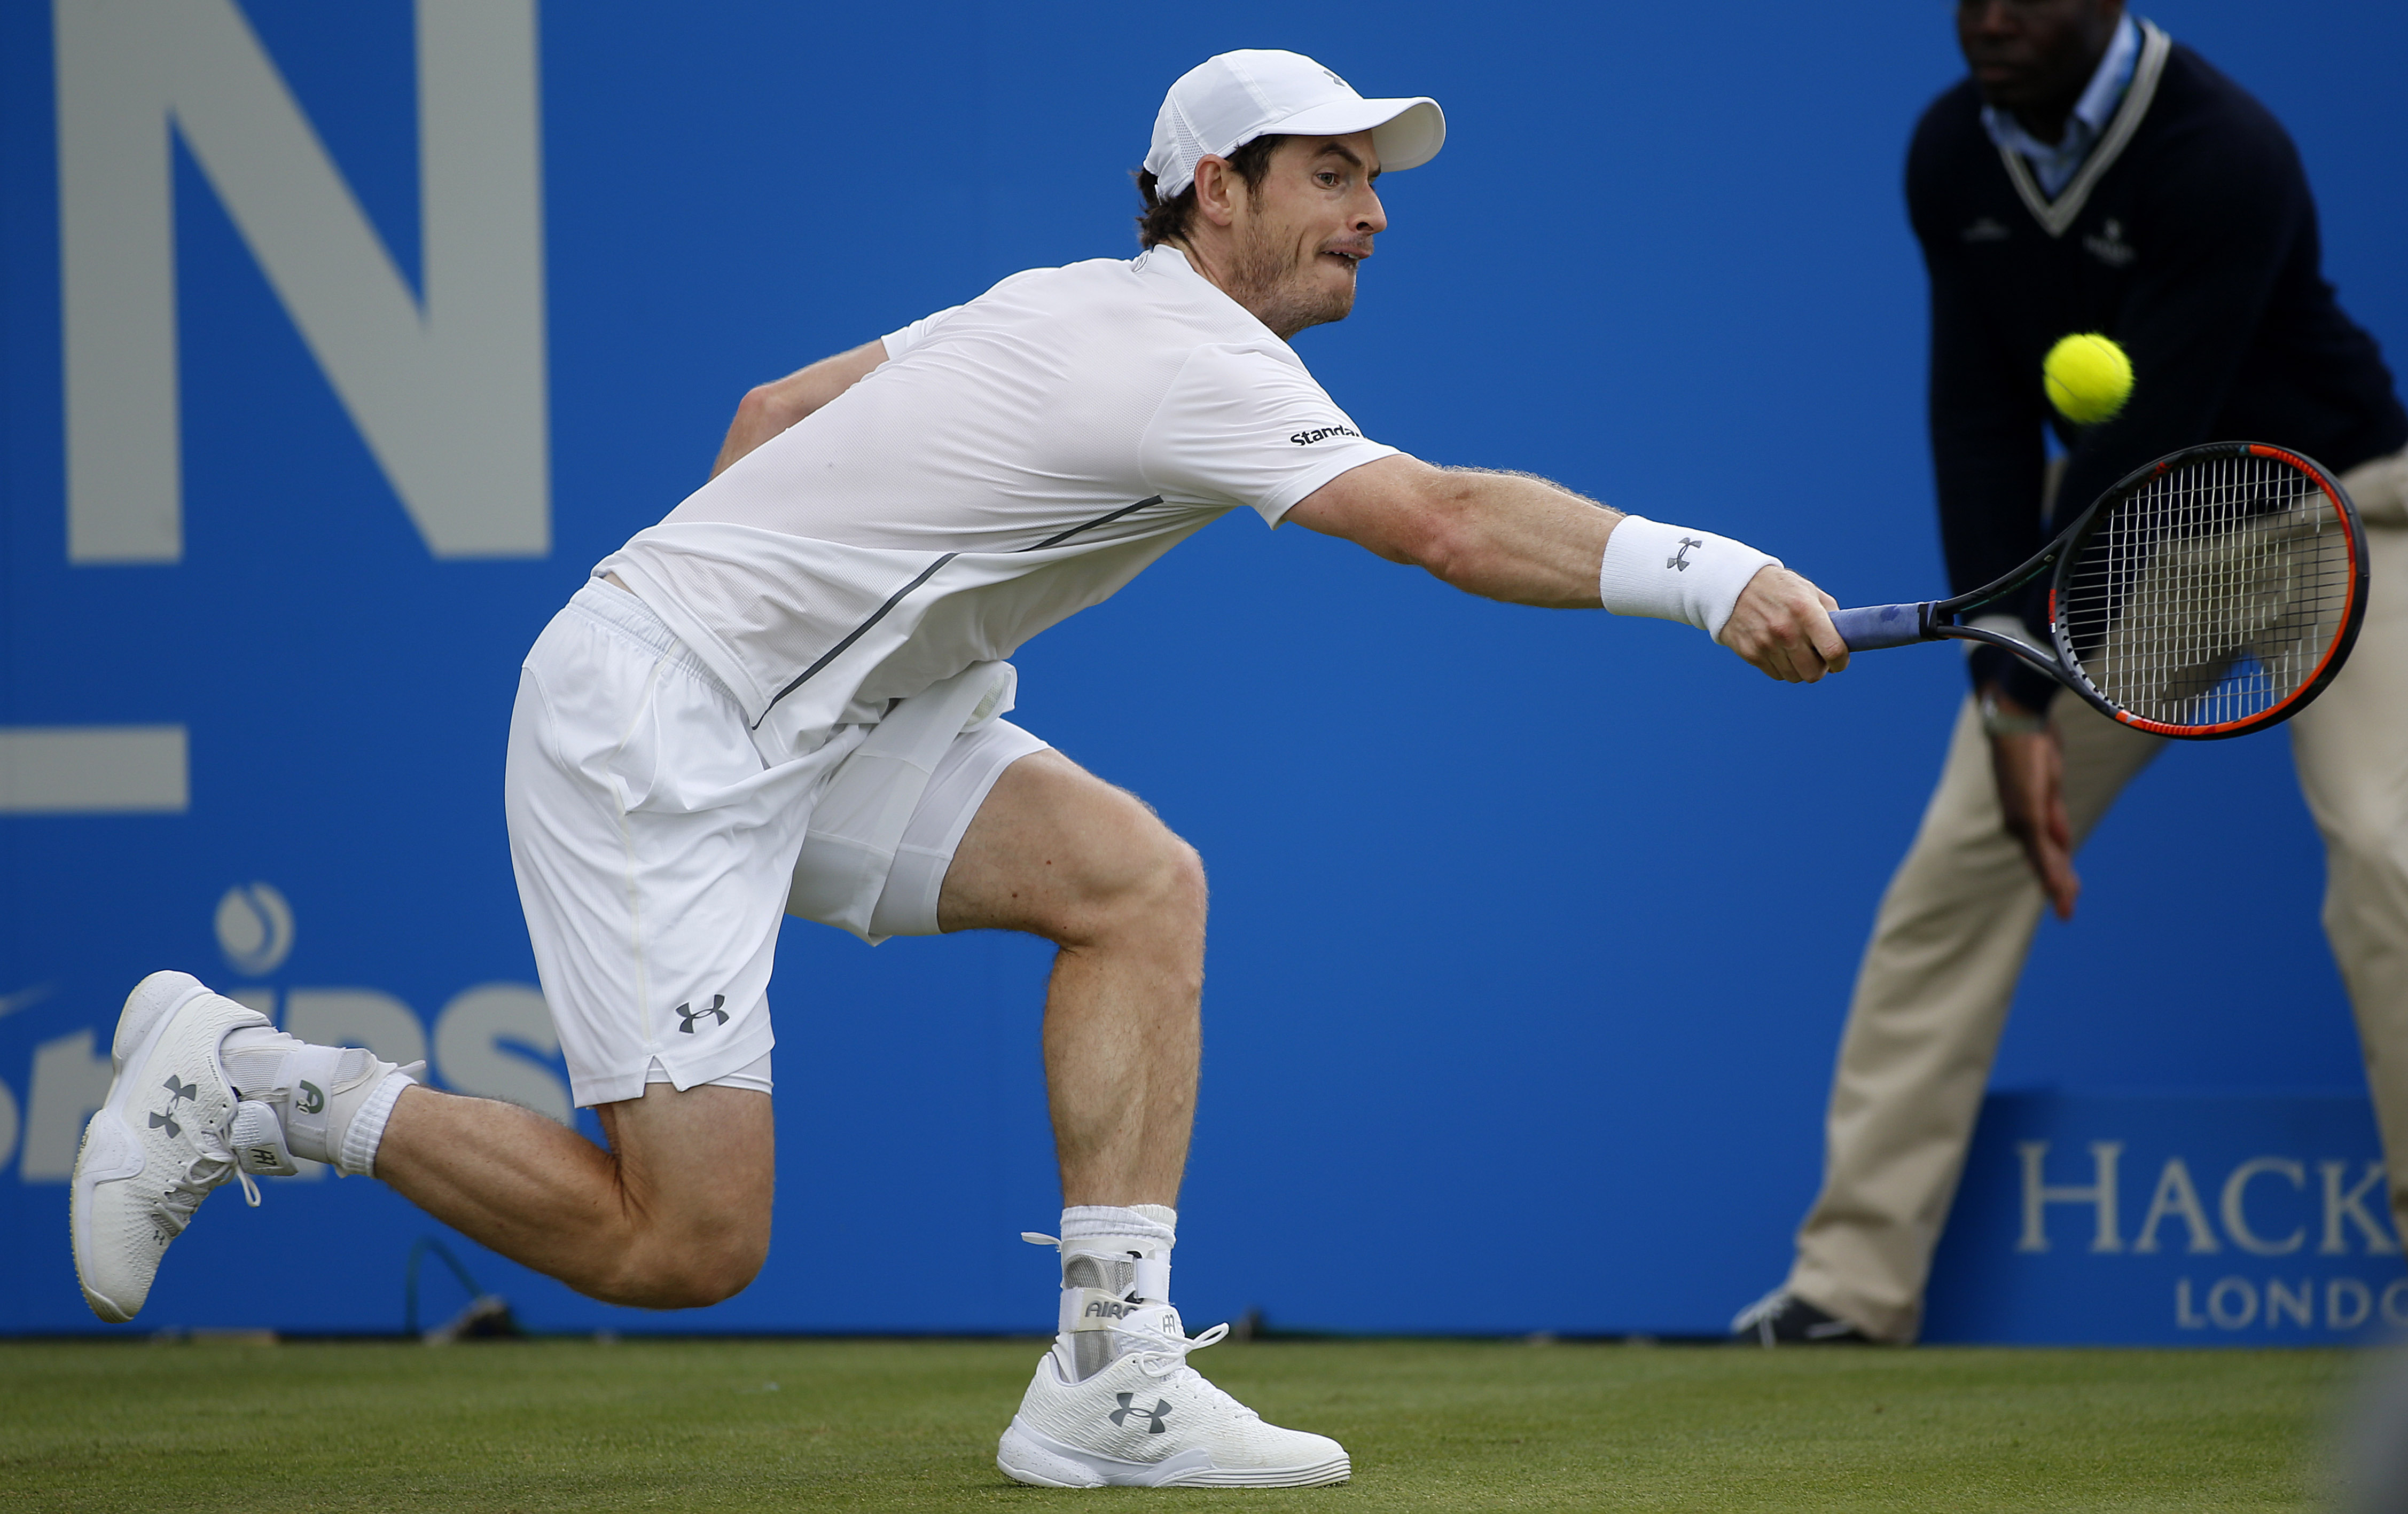 Britain's Andy Murray returns the ball to his compatriot Aljaz Bedene during day four of the 2016 tennis Championships at The Queen's Club, London, Thursday, June 16, 2016. (Steve Paston/PA via AP) UNITED KINGDOM OUT  NO SALES NO ARCHIVE